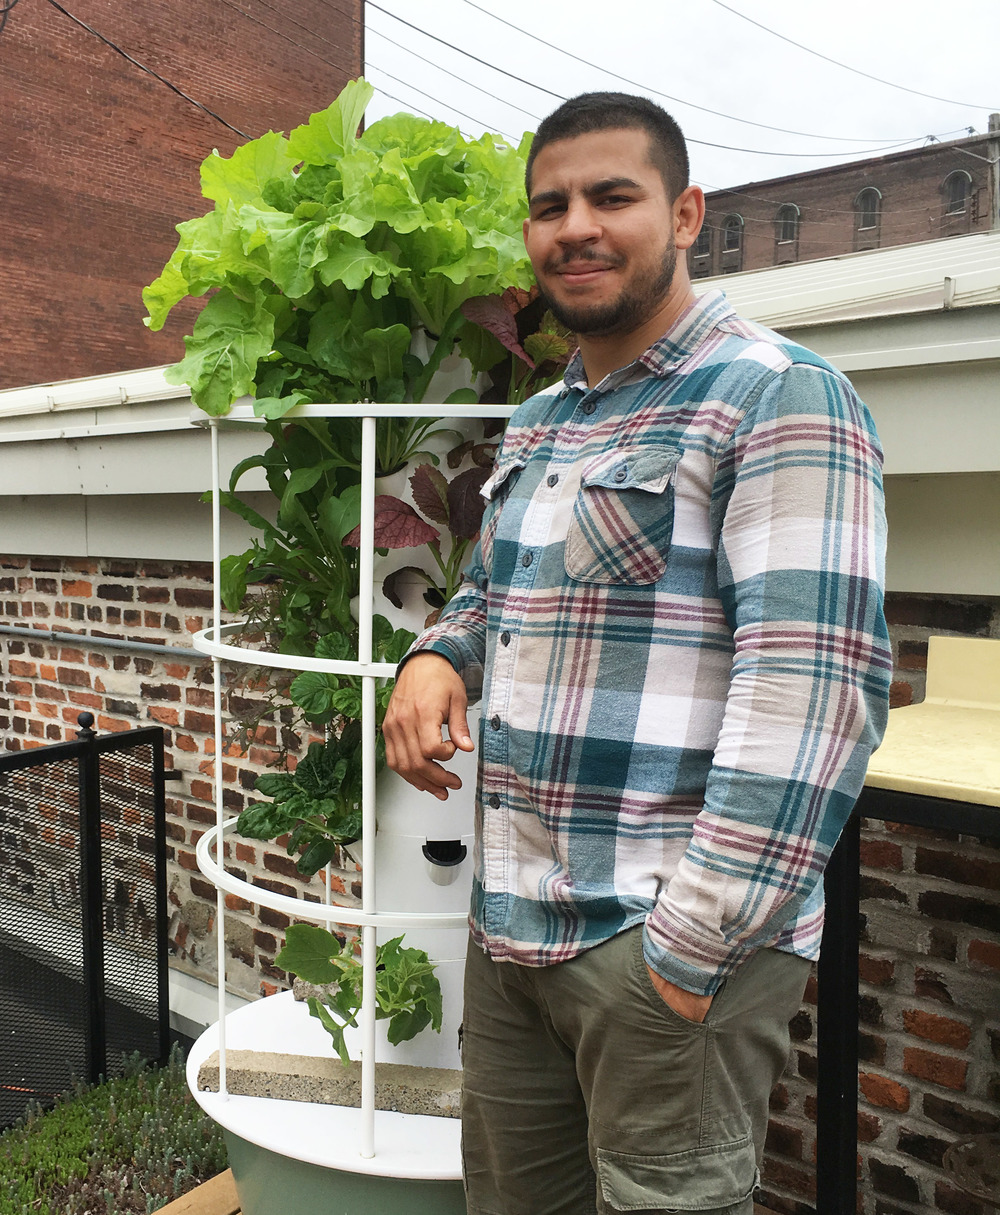 Farm worker in flannel has one hand in his pocket, smiling and leaning on a hydroponic tower on the KERR FOOD ROOF